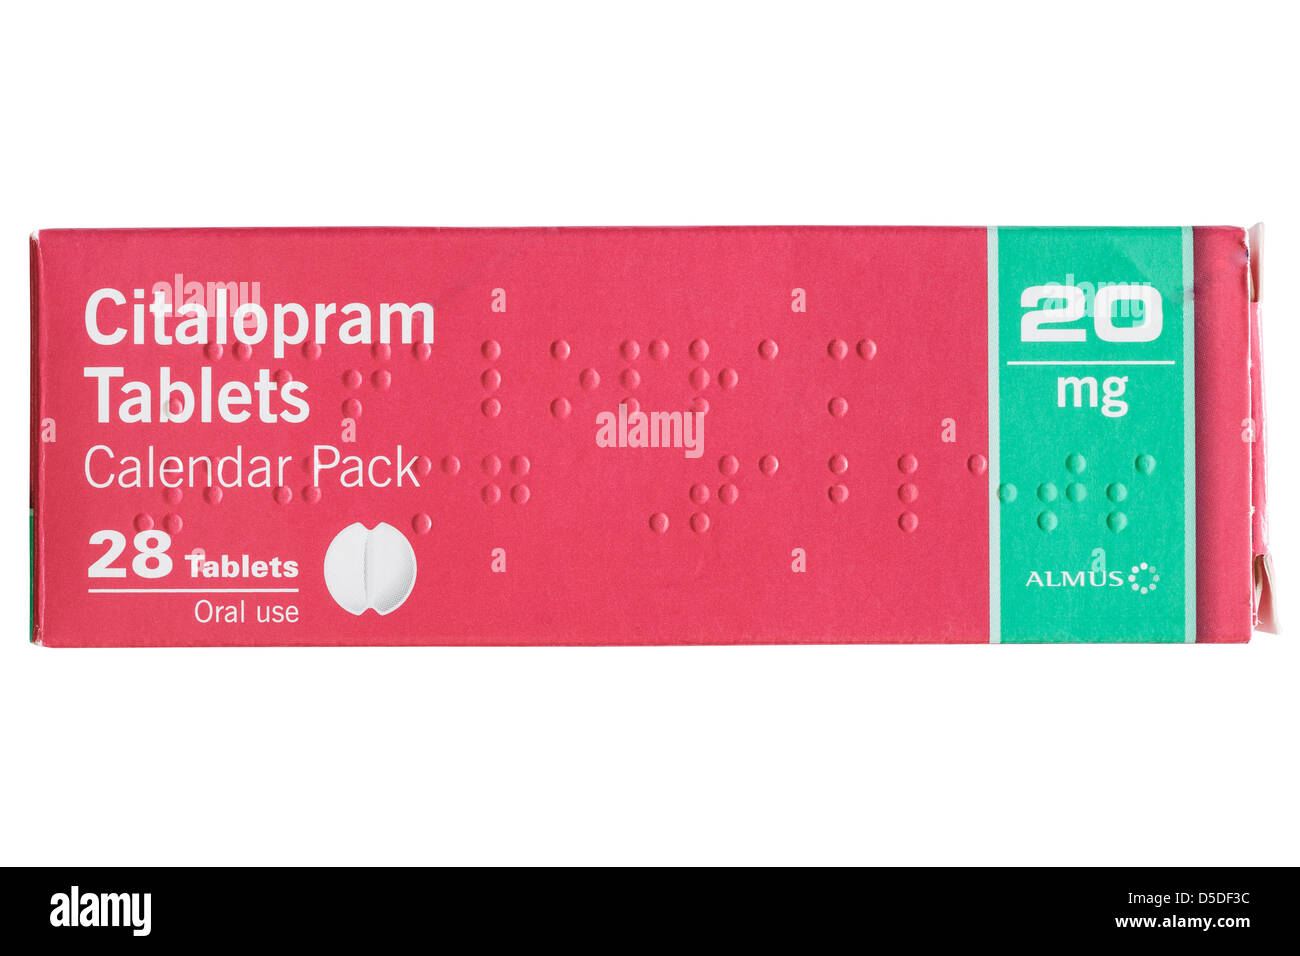 Citalopram Reviews